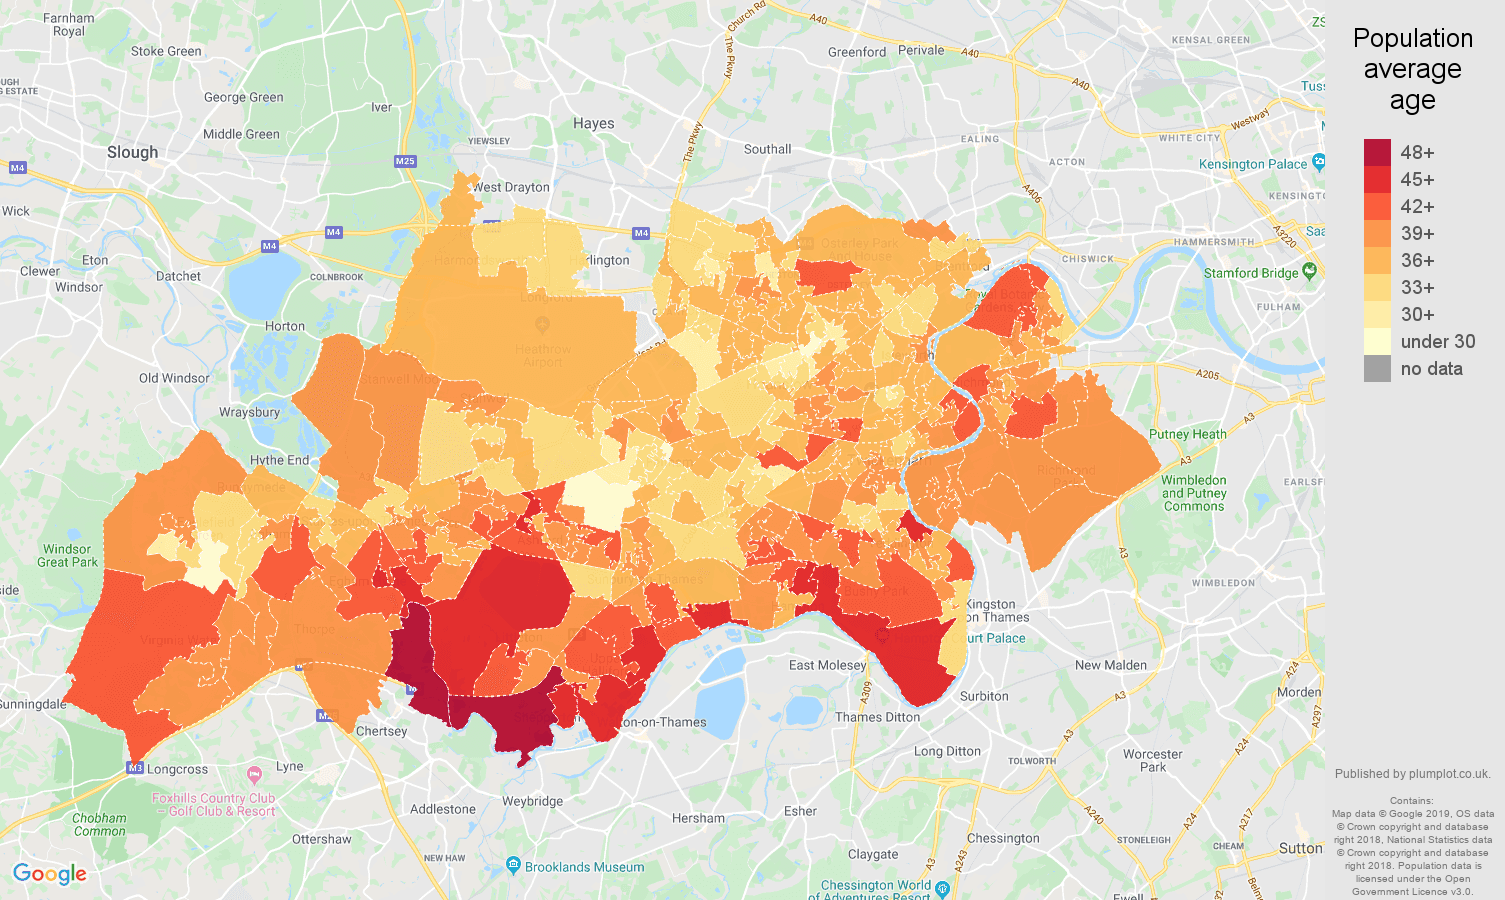 Twickenham population average age map